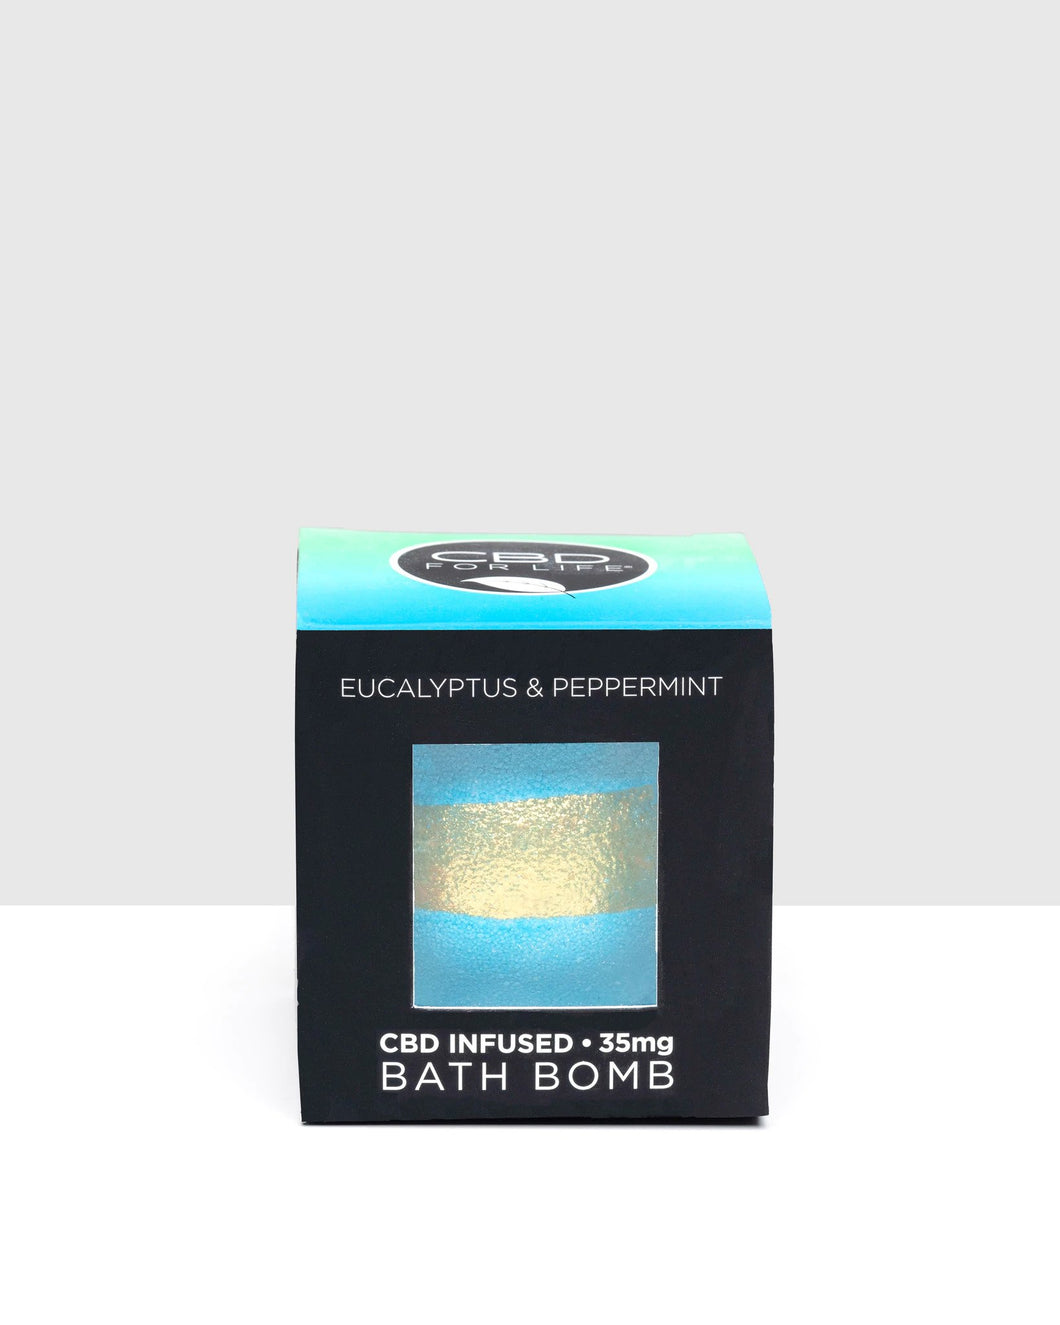 CBD For Life - Bath Bomb Eucalyptus & Peppermint